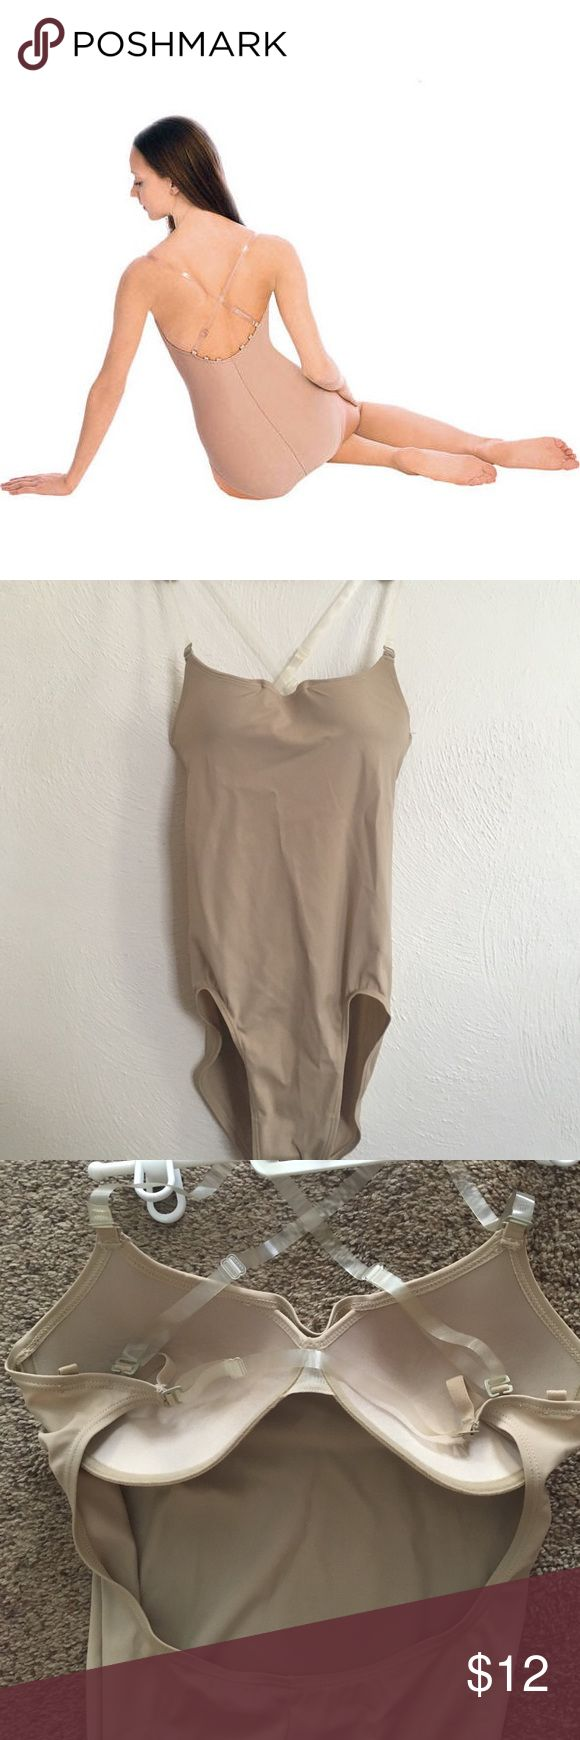 Bodywrappers Nude Dance Leotard Nude colored dance camisole, designed to fit under your performance wear. Comes with clear straps and a bra sewn in. Never worn. Intimates & Sleepwear Shapewear